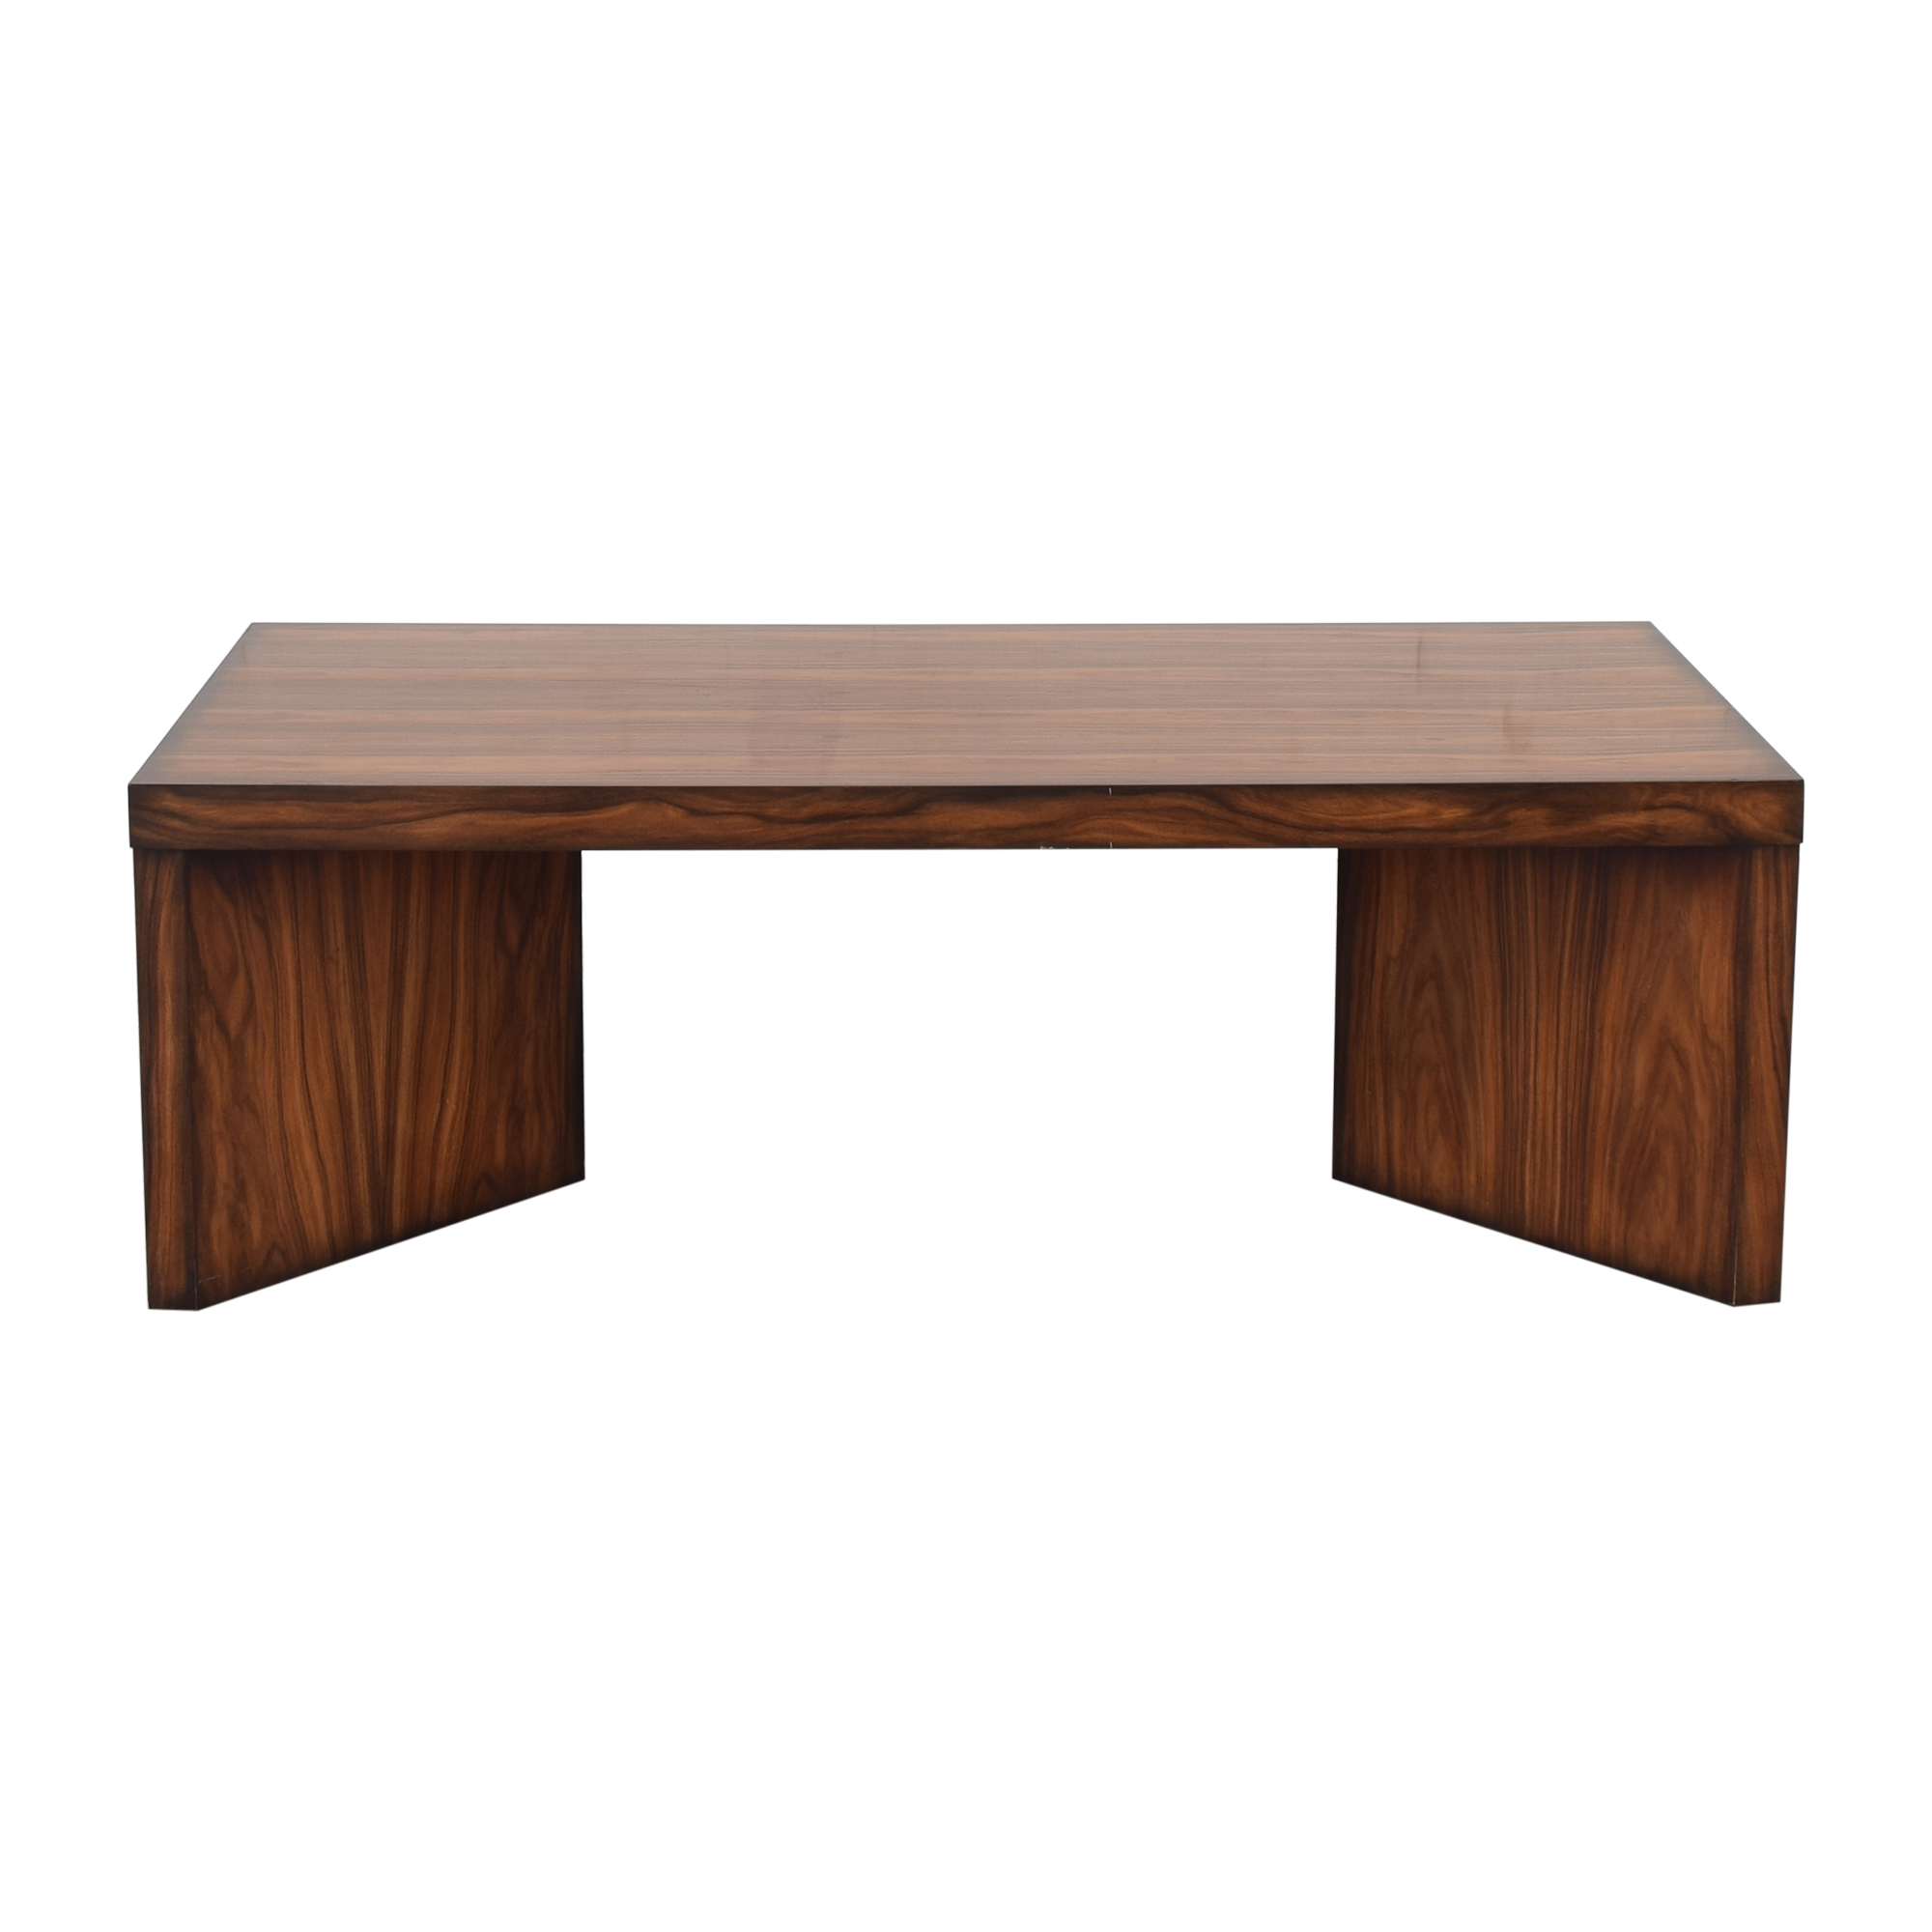 Kindel Kindel Rosewood Coffee Table